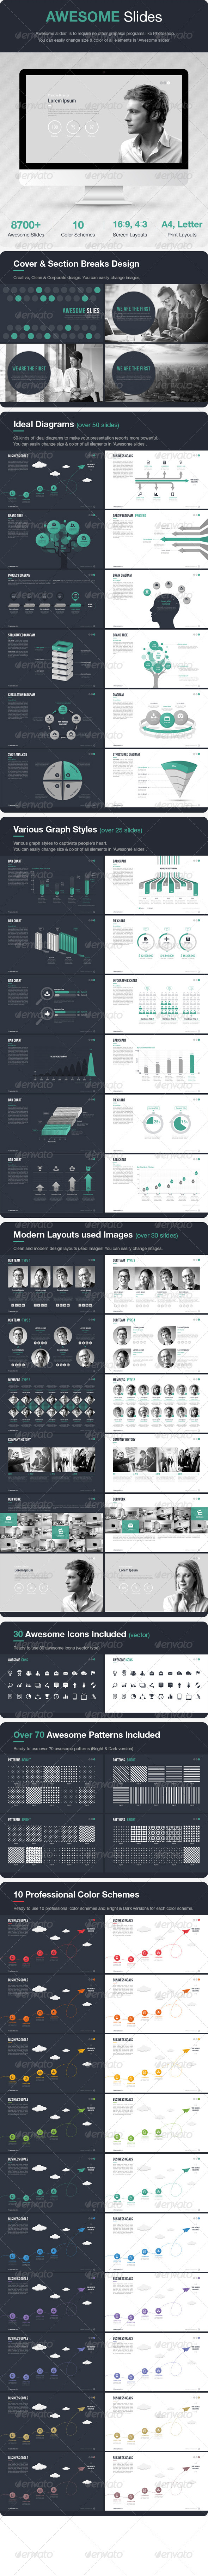 GraphicRiver Awesome Slides 7827016